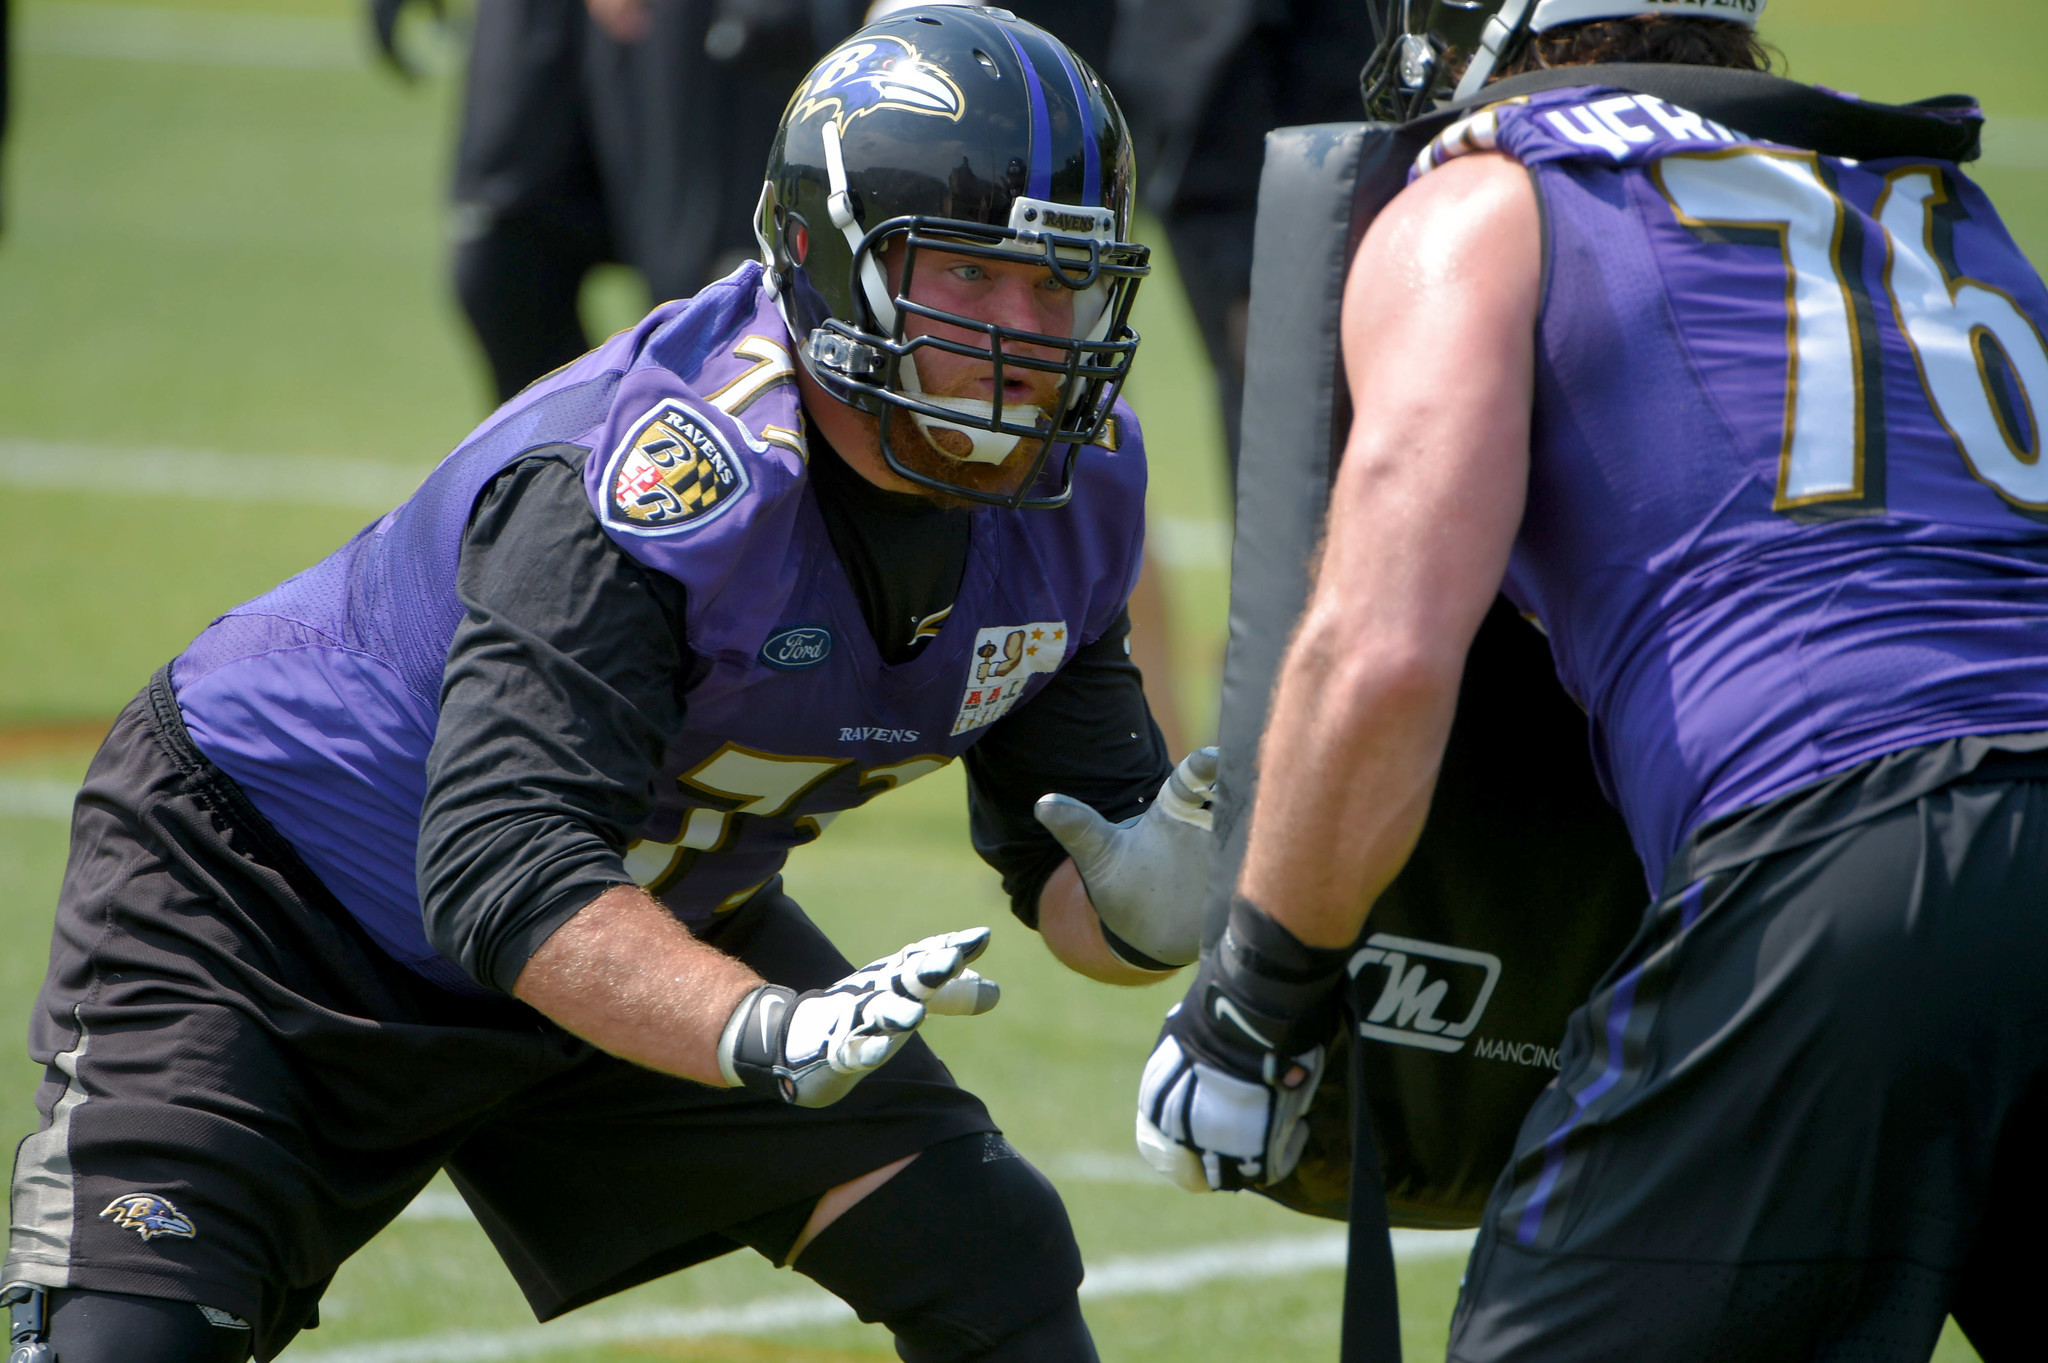 Ravens right guard Marshal Yanda not expected to play Thursday